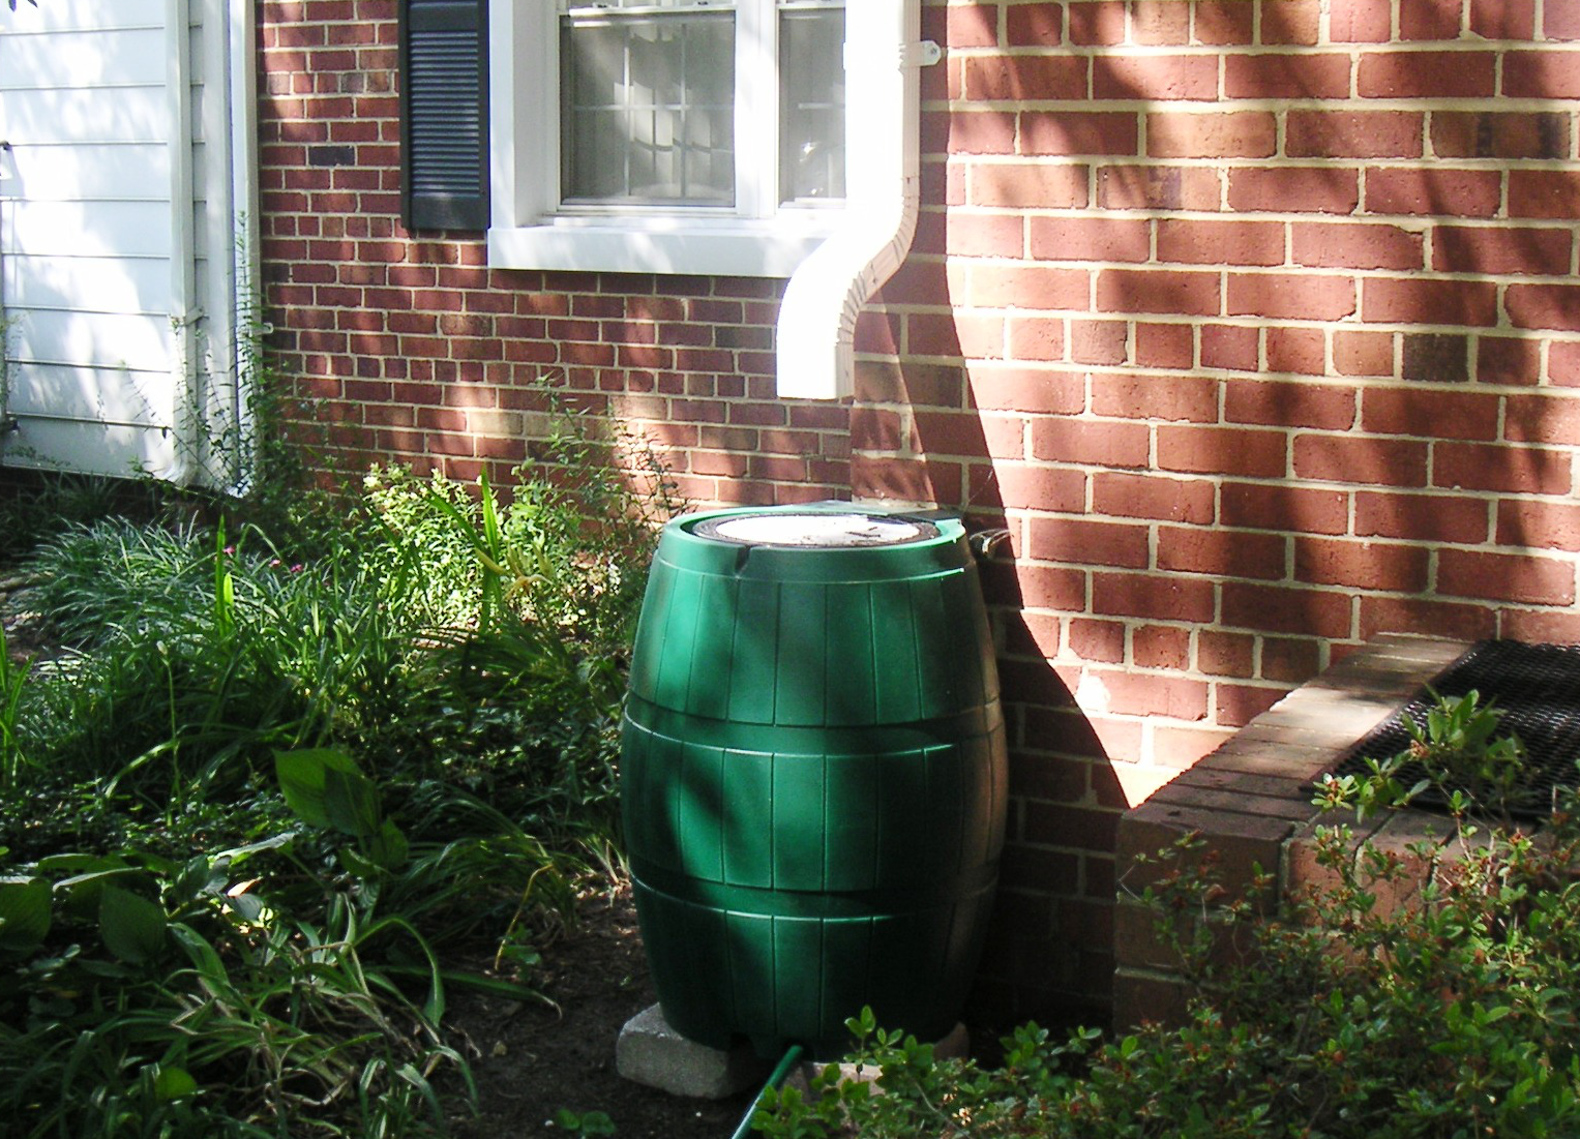 colorado is finally legalizing rain barrels